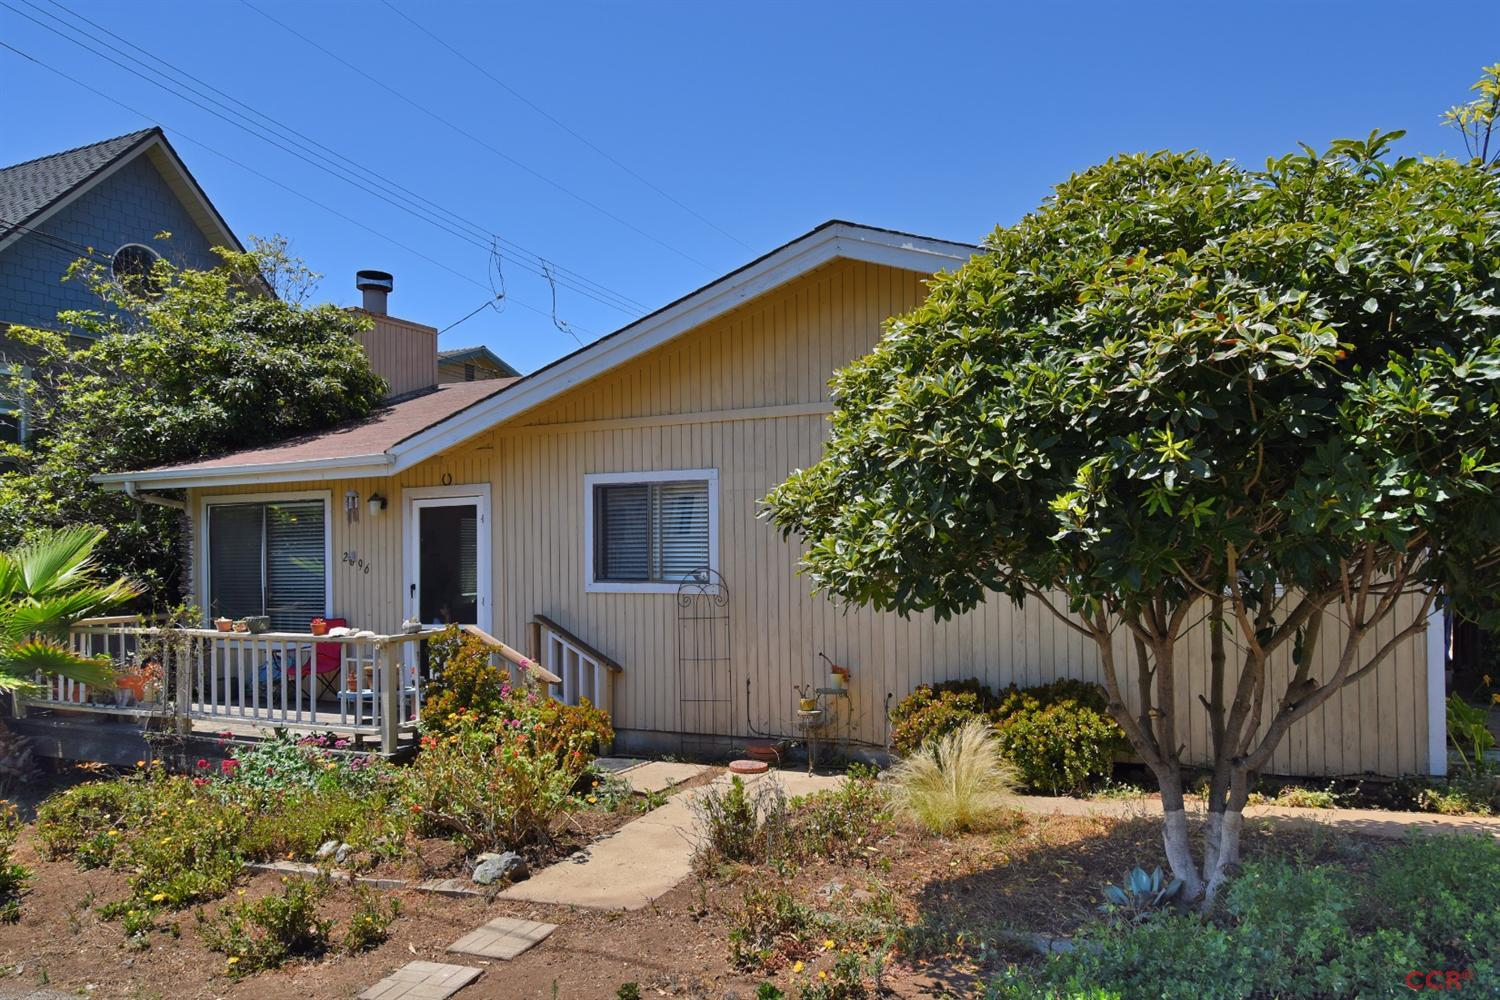 2696 Orville Ave, Cayucos, CA 93430